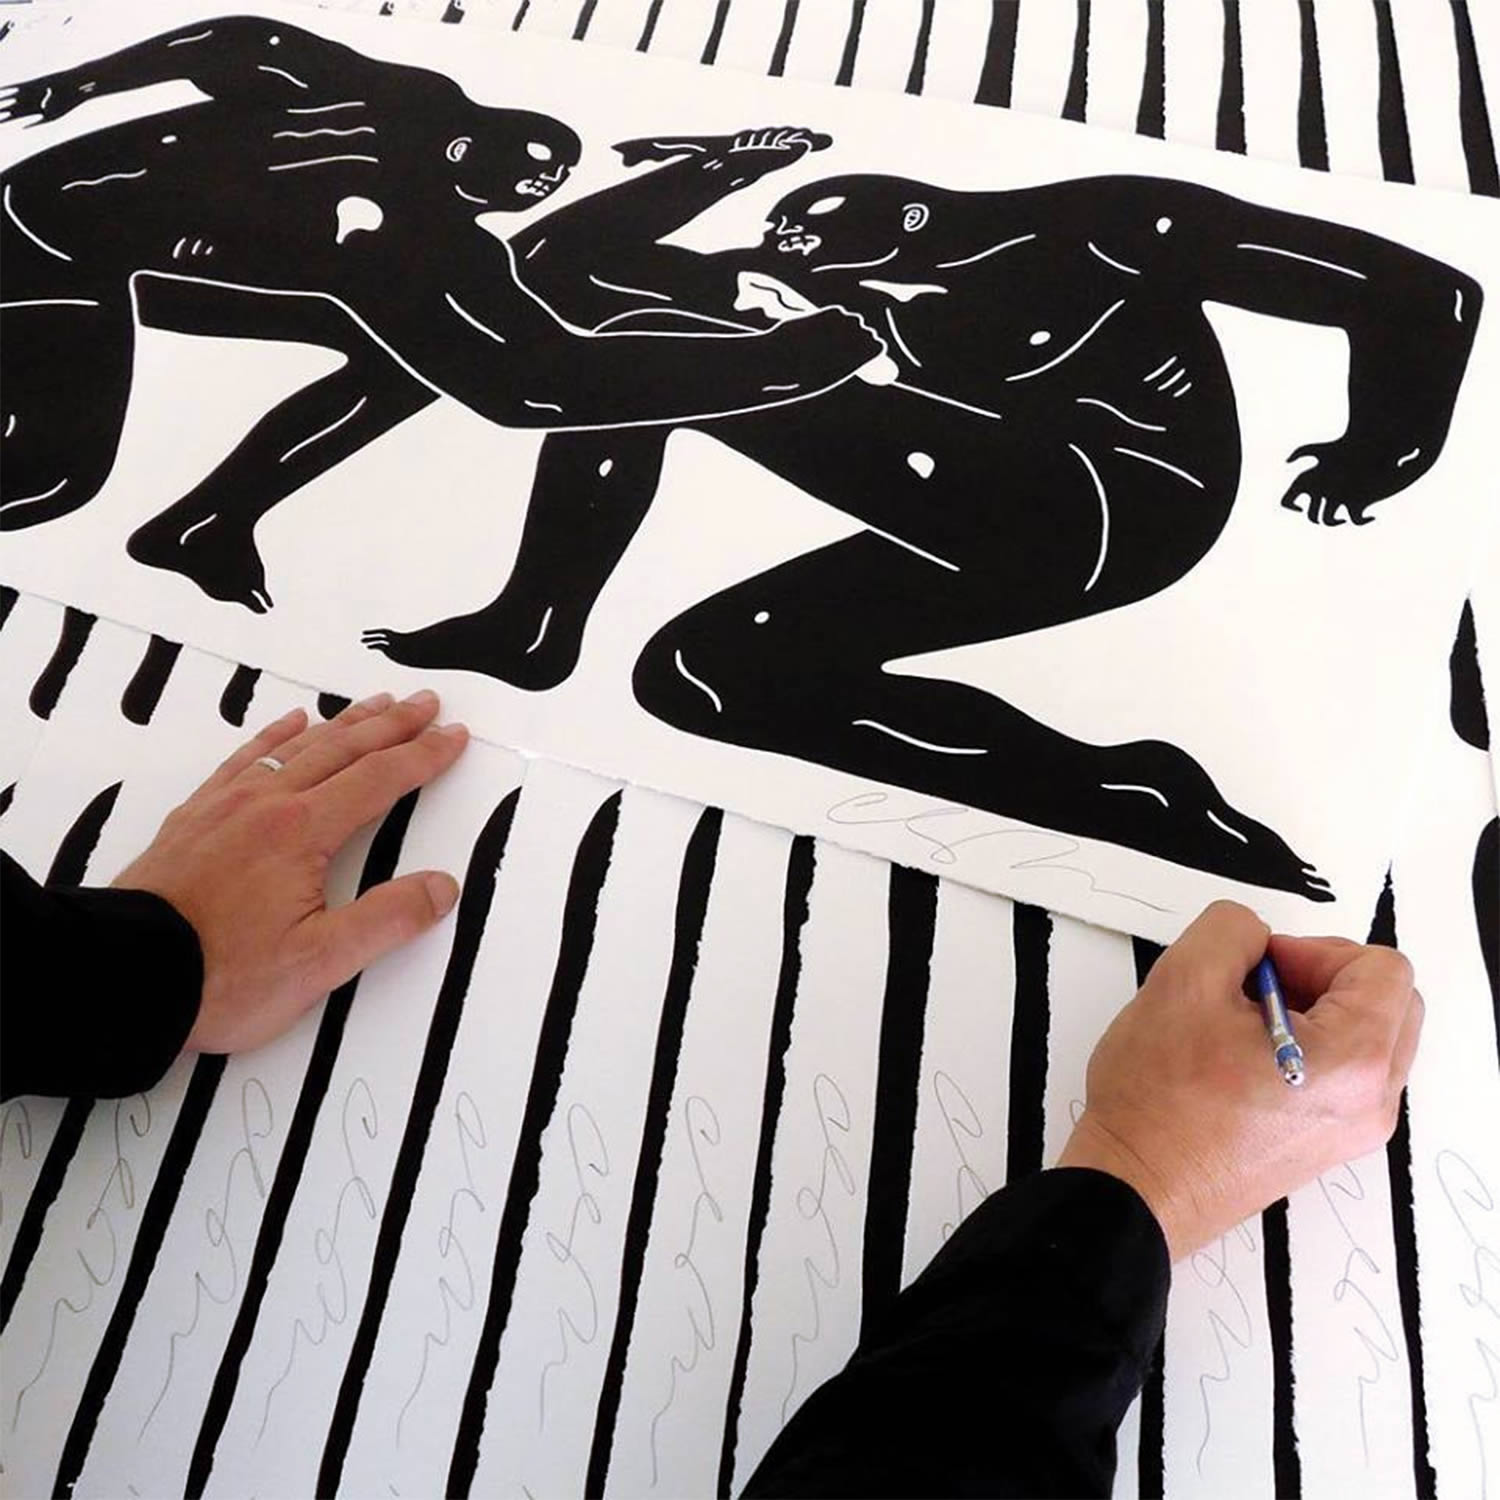 the artist signing a print, cleon peterson